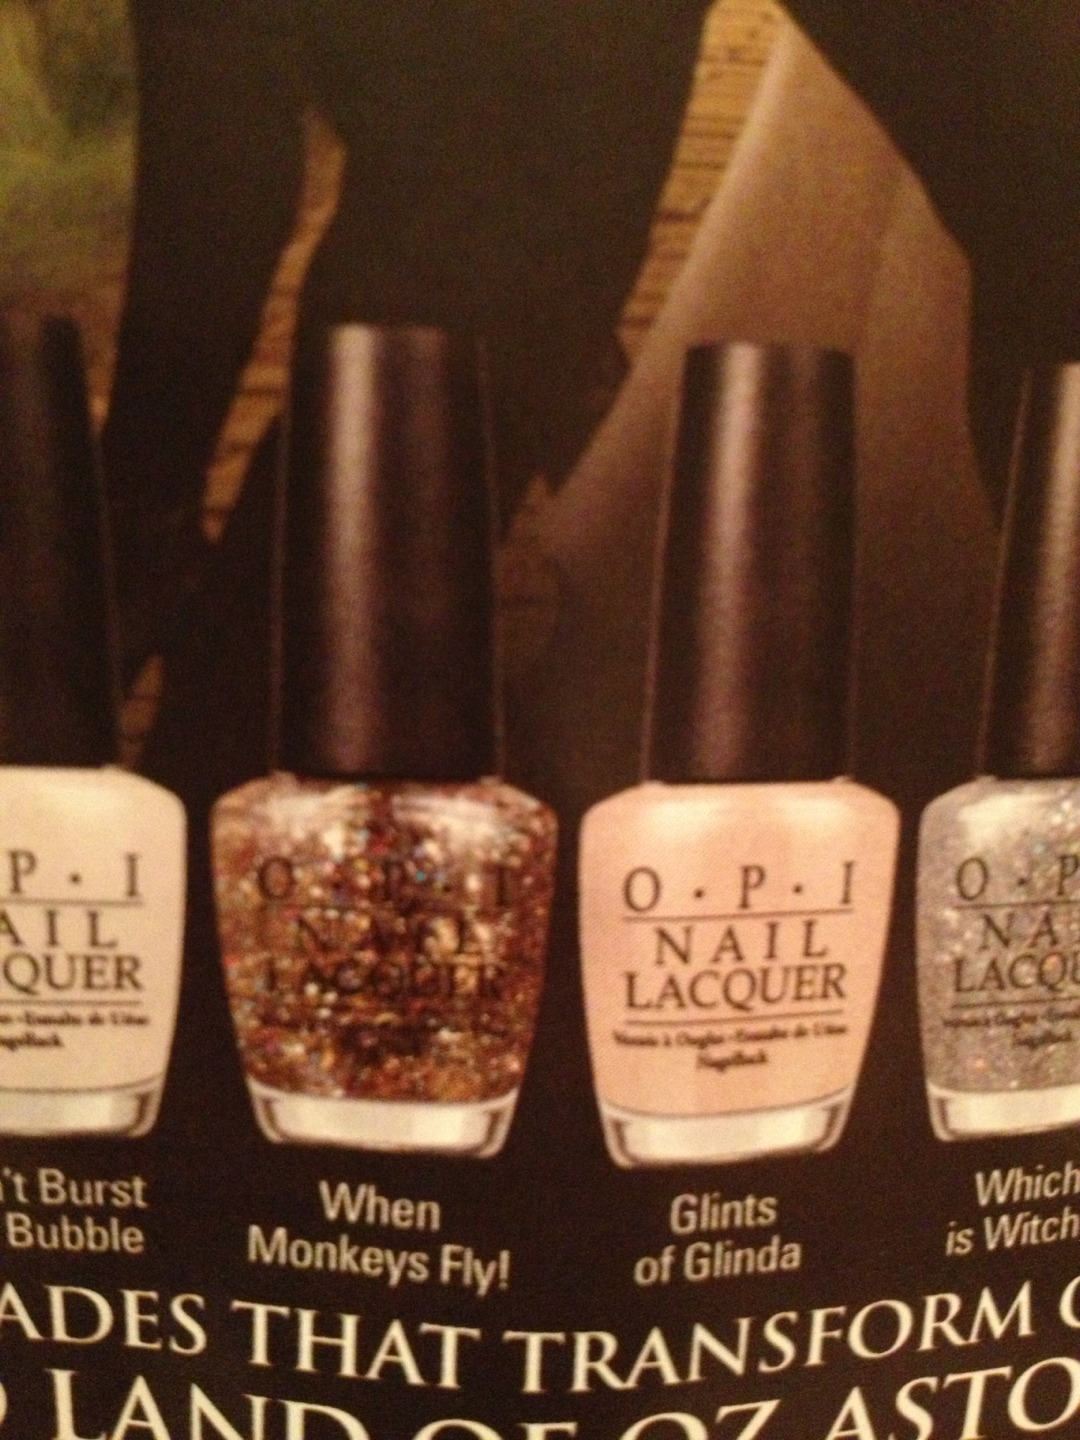 Oh no I need these nail polishes.